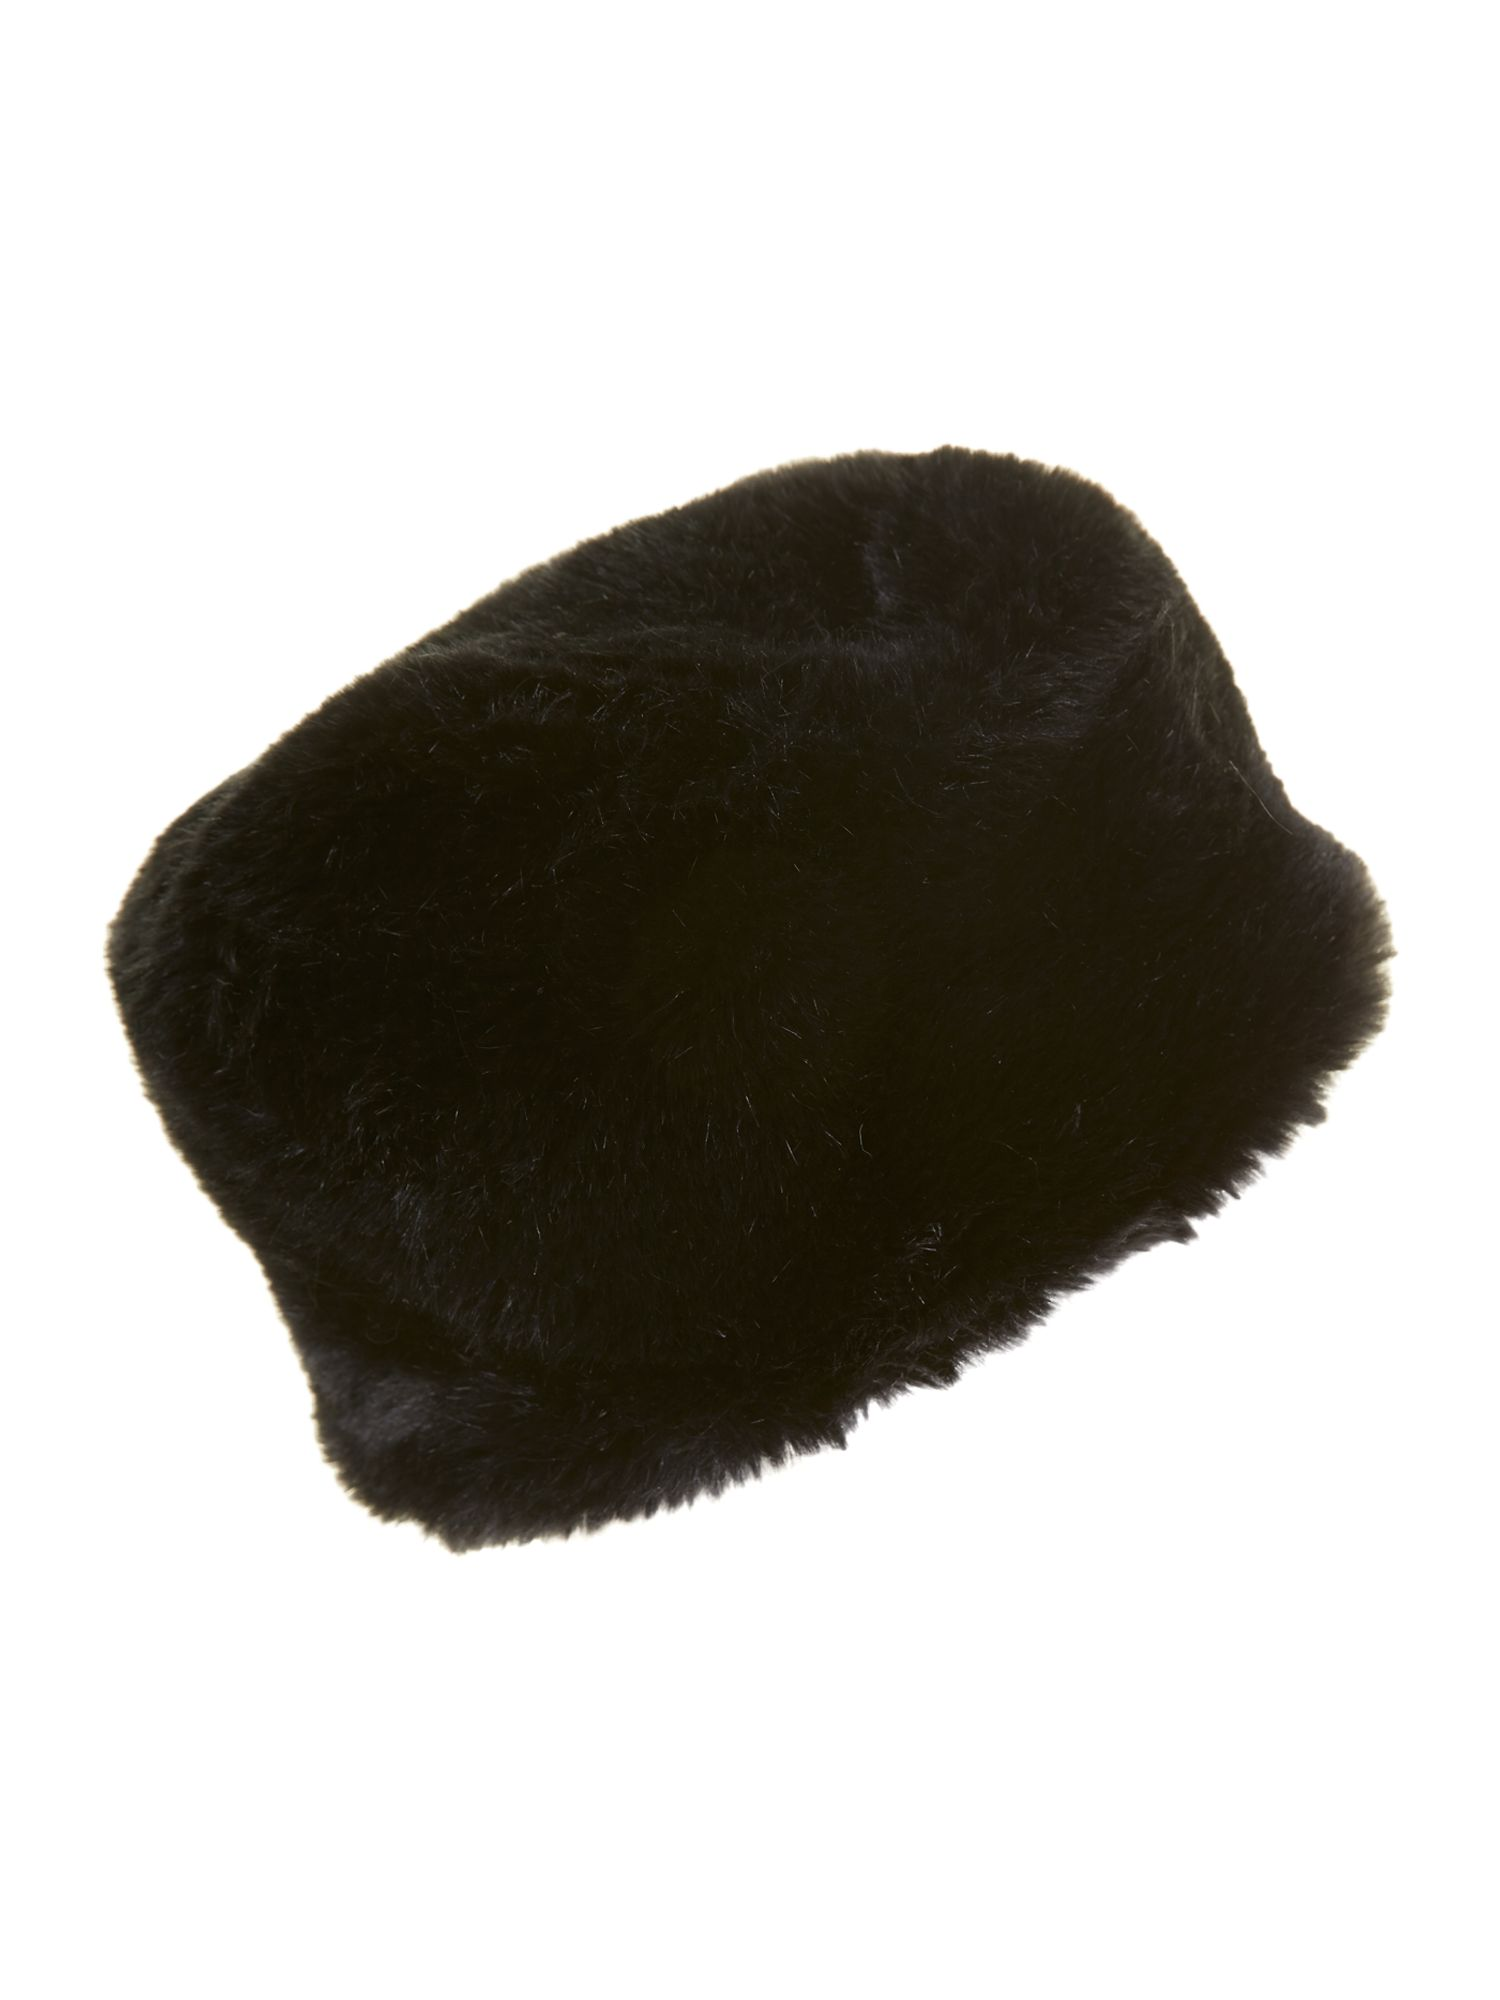 Faux fur cossack hat black